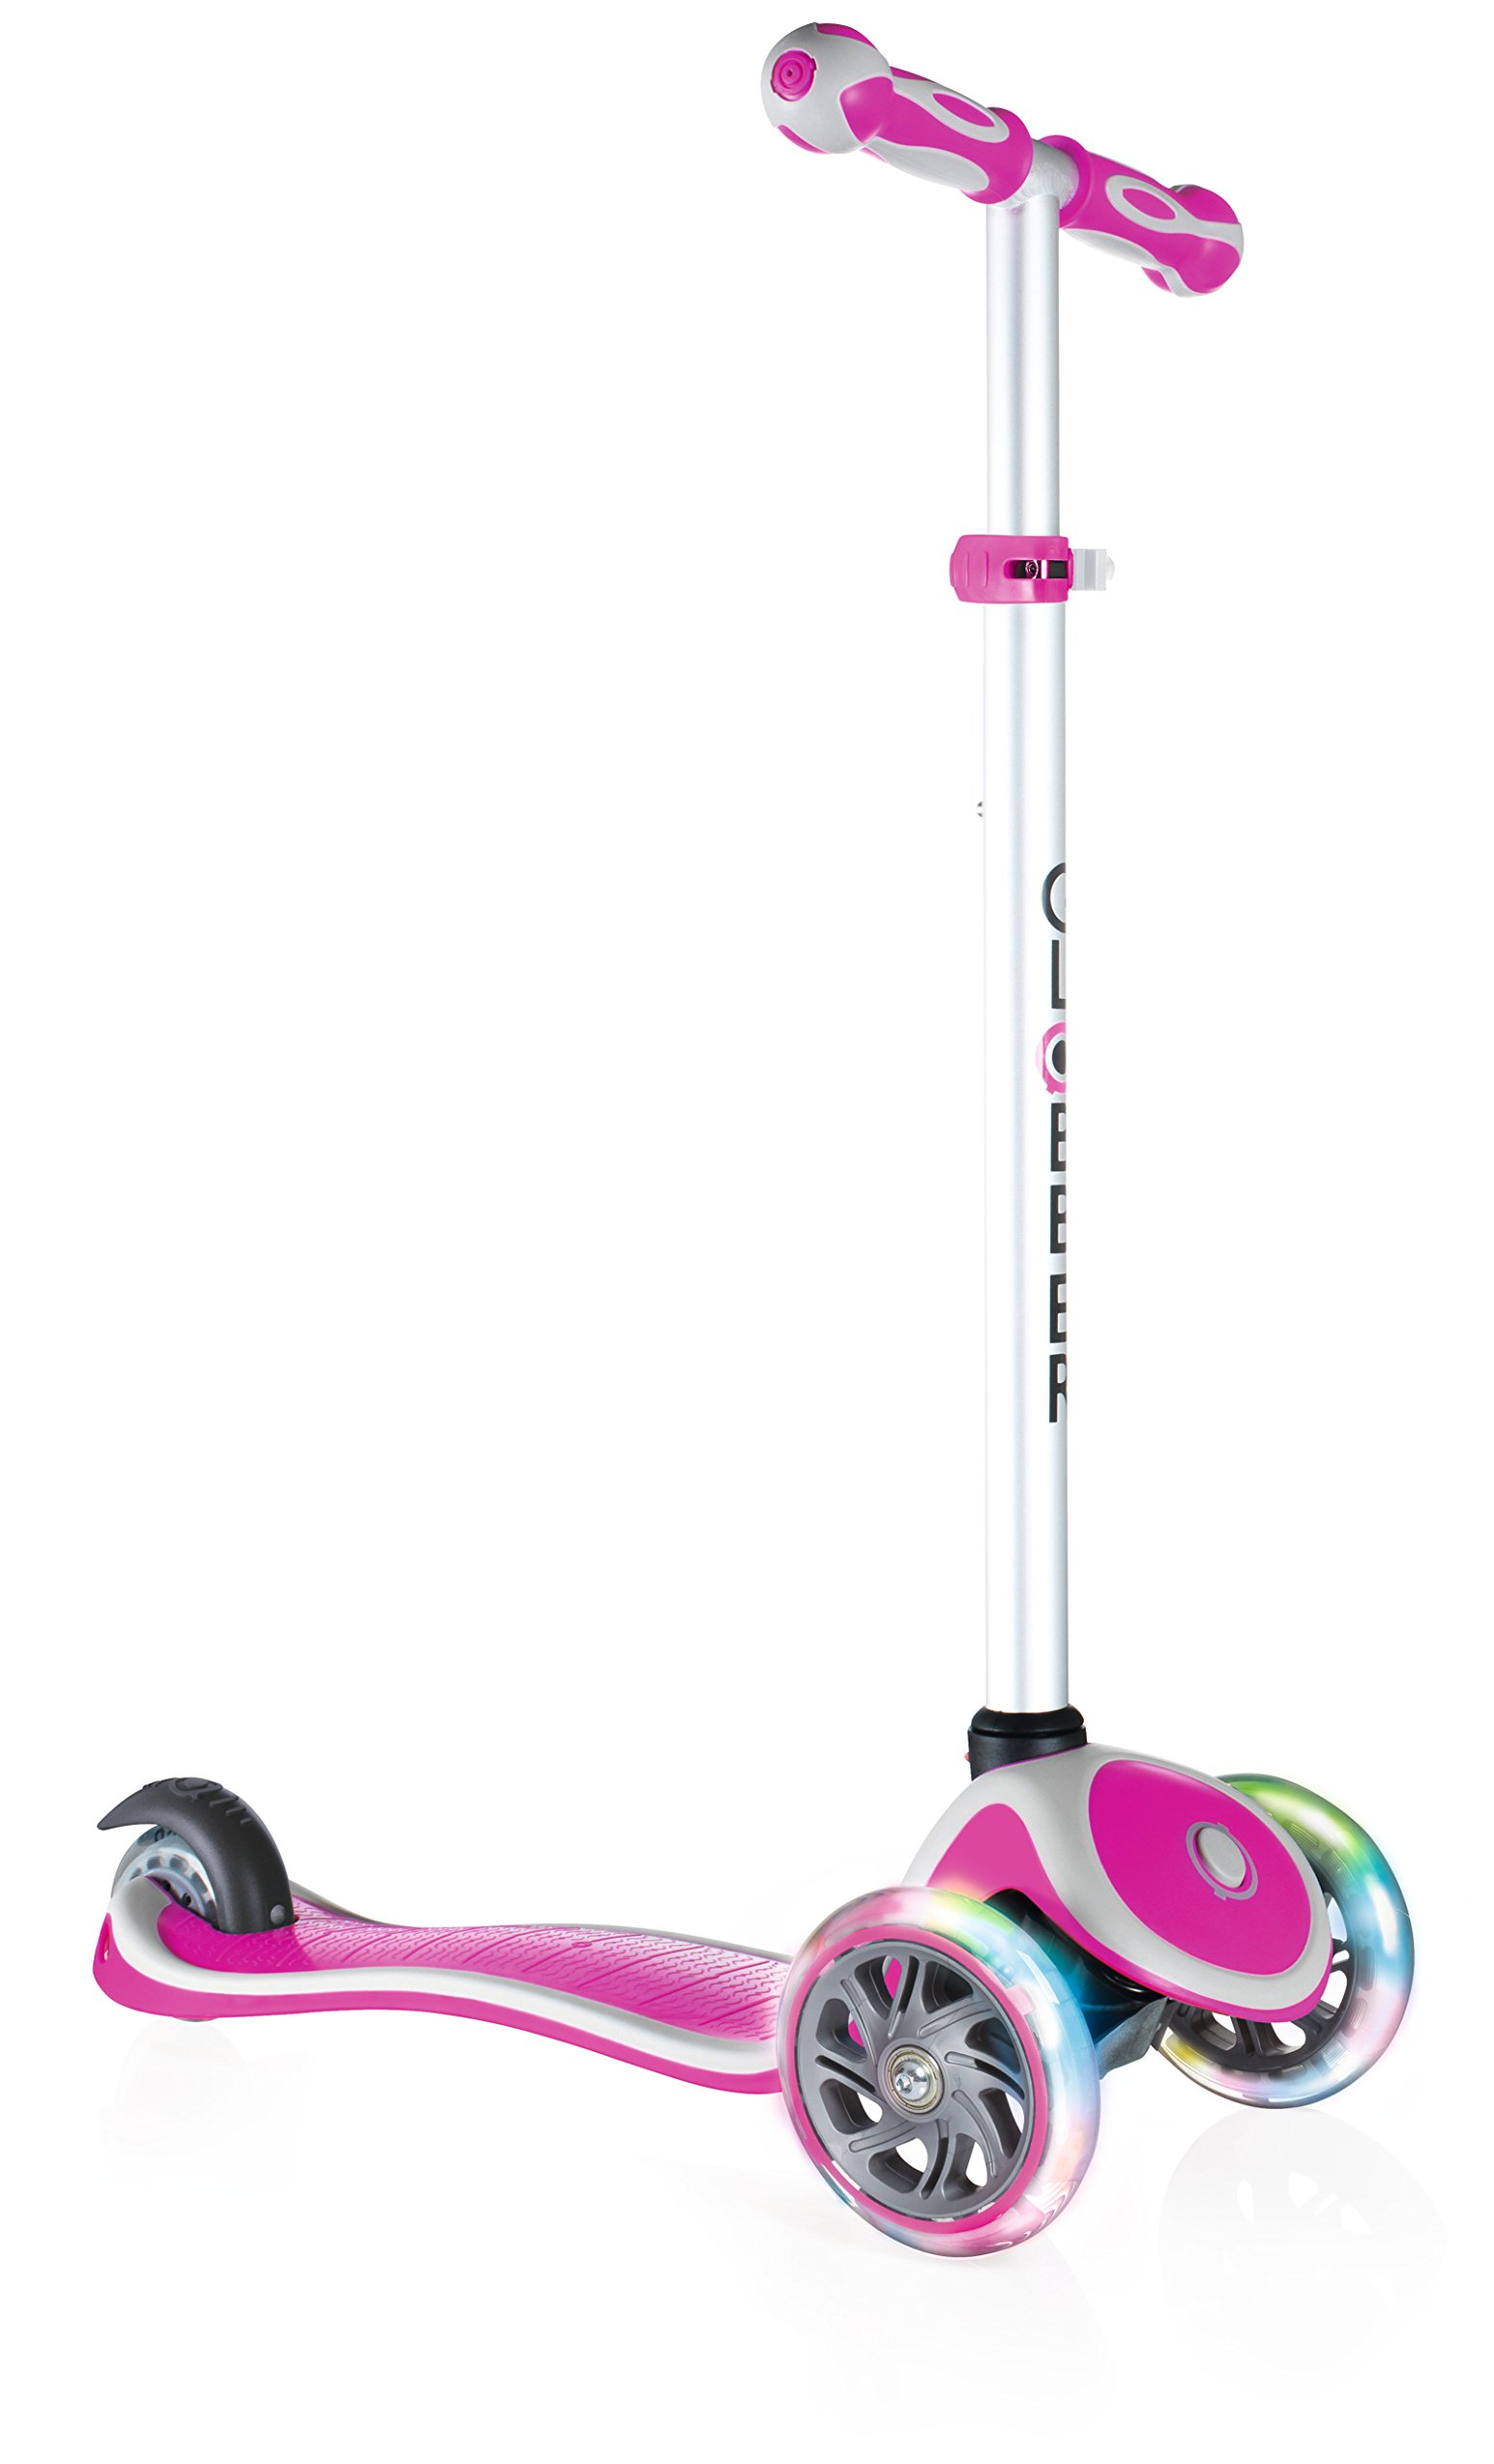 Globber 3 Wheel Adjustable Height Scooter with LED Light Up Wheels (Pink) by Globber Scooters